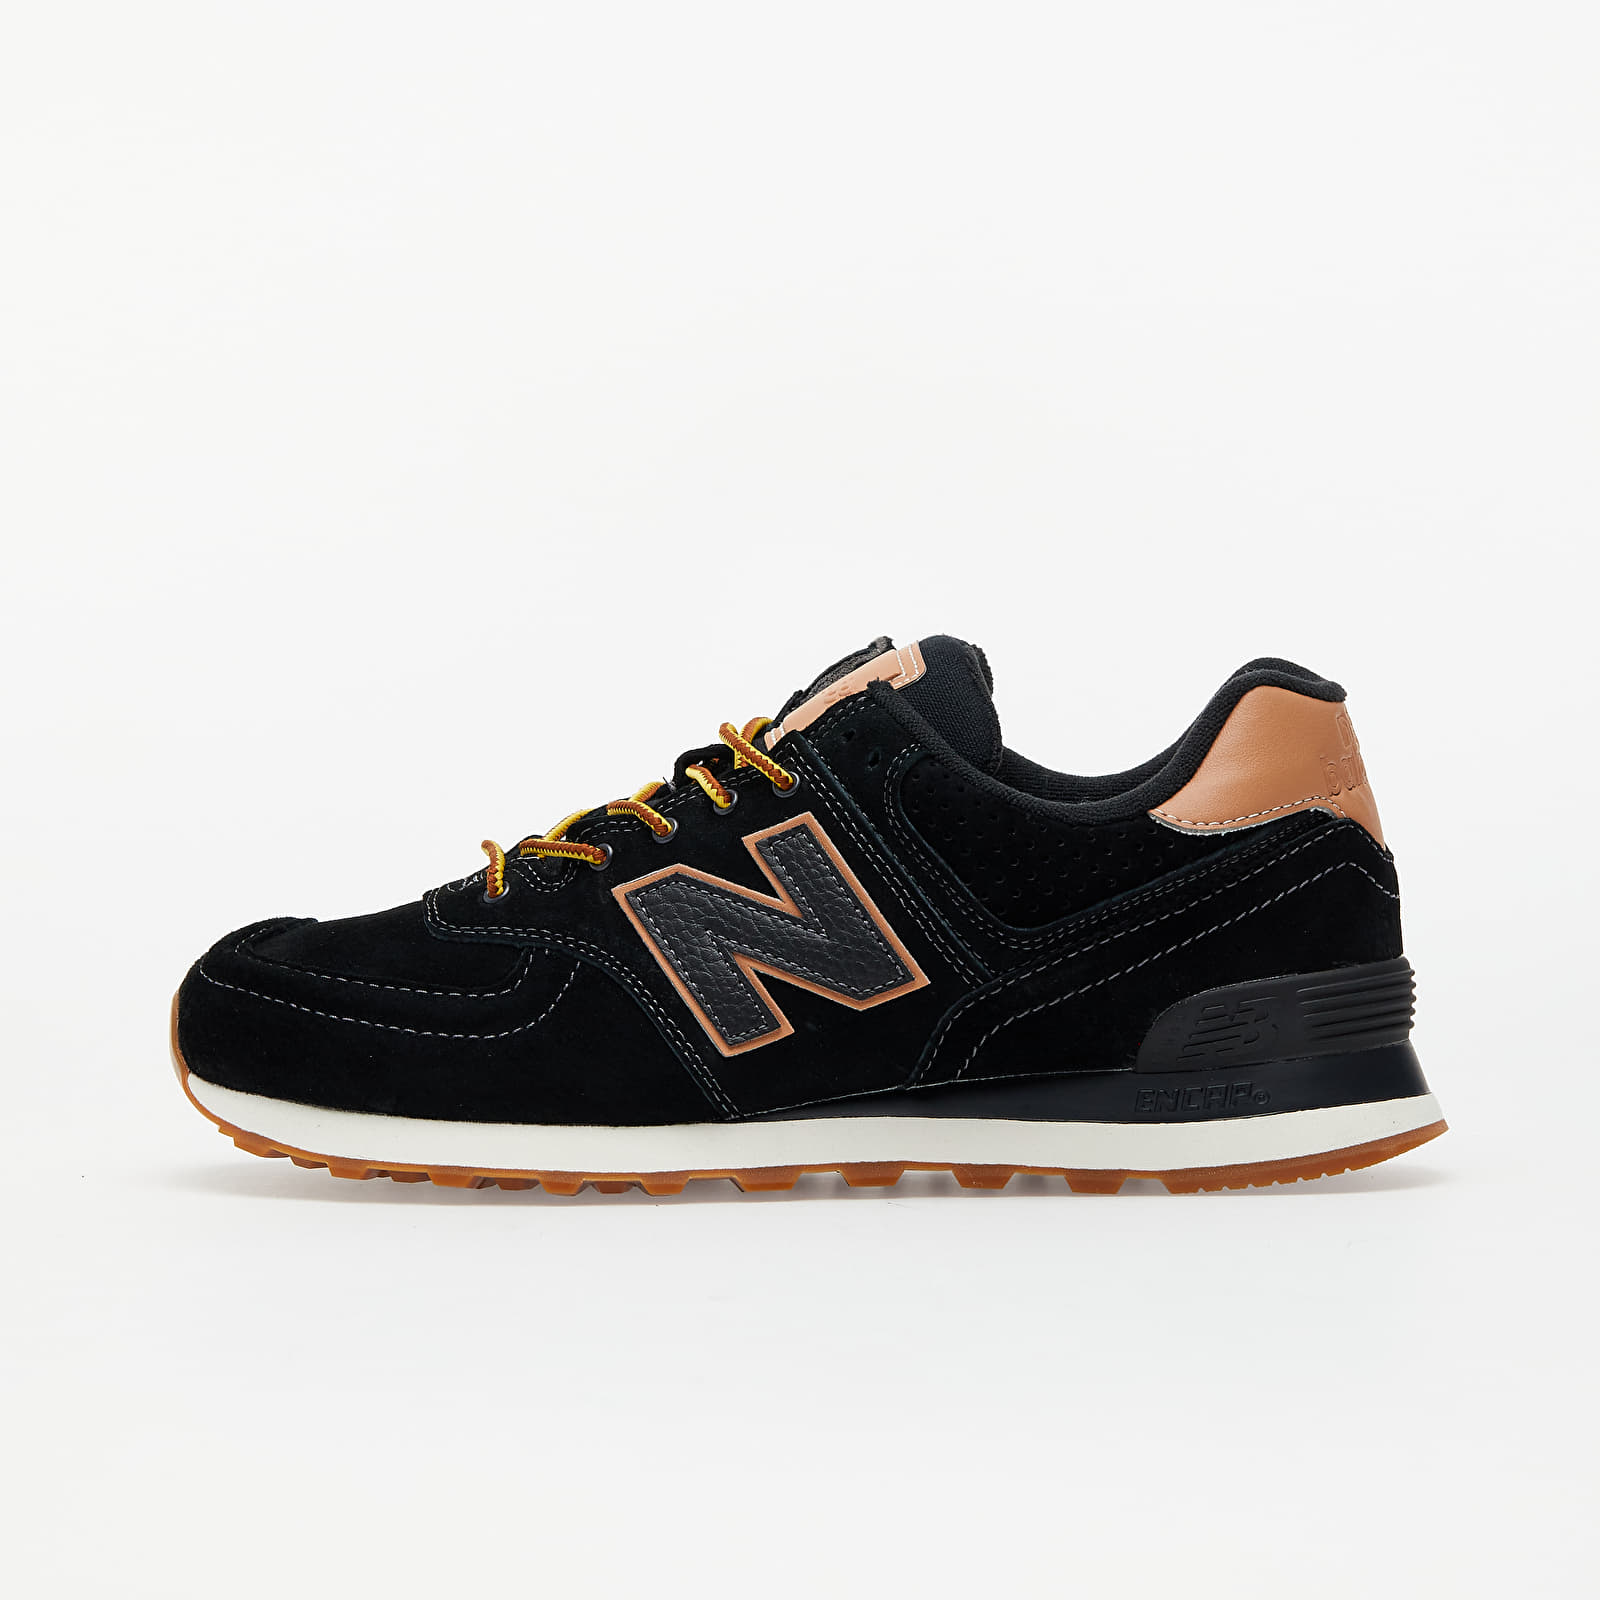 New Balance 574 Black/ Brown EUR 40.5